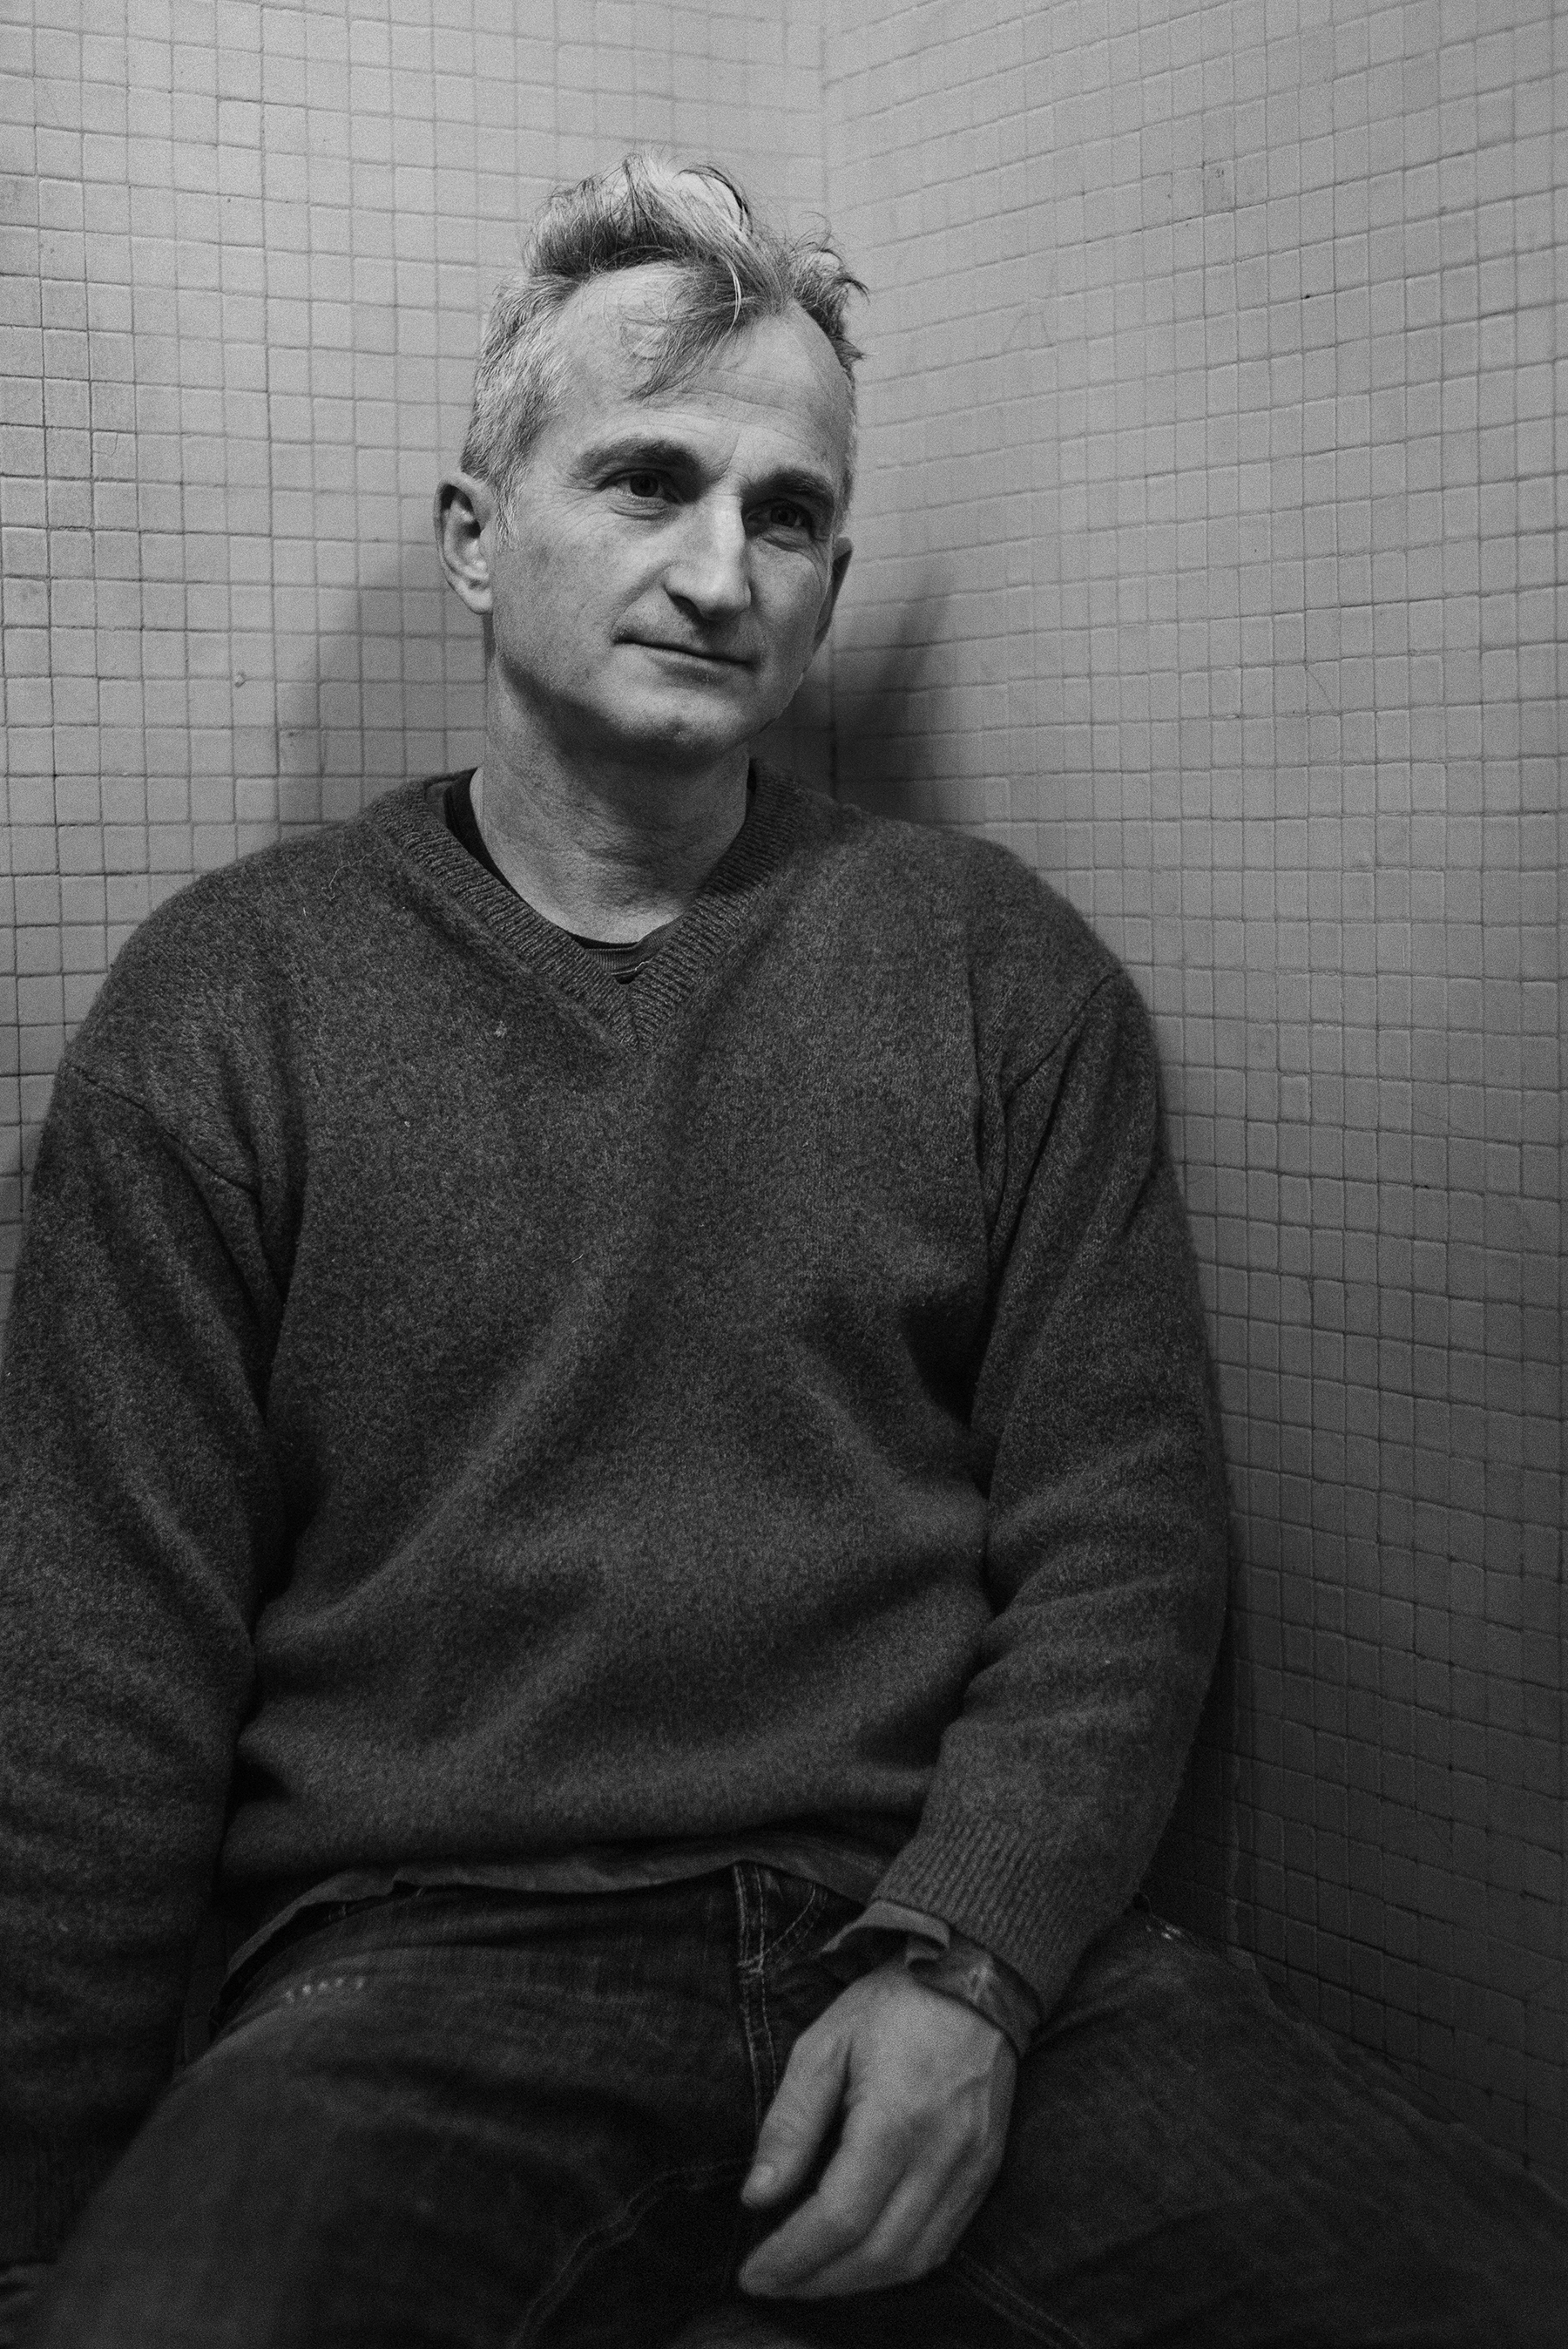 Andrea Rosso (45) portrayed inside the Public Baths of Via Agli� in the working-class district of Barriera di Milano in Turin, Italy; November 2018.Mr. Rosso separated from his ex-wife in July; since he couldn�t afford a space for himself, he is now hosted on friends� couches - changing 9 places in 5 months � and became a regular user of Via Agli��s Public Bath.